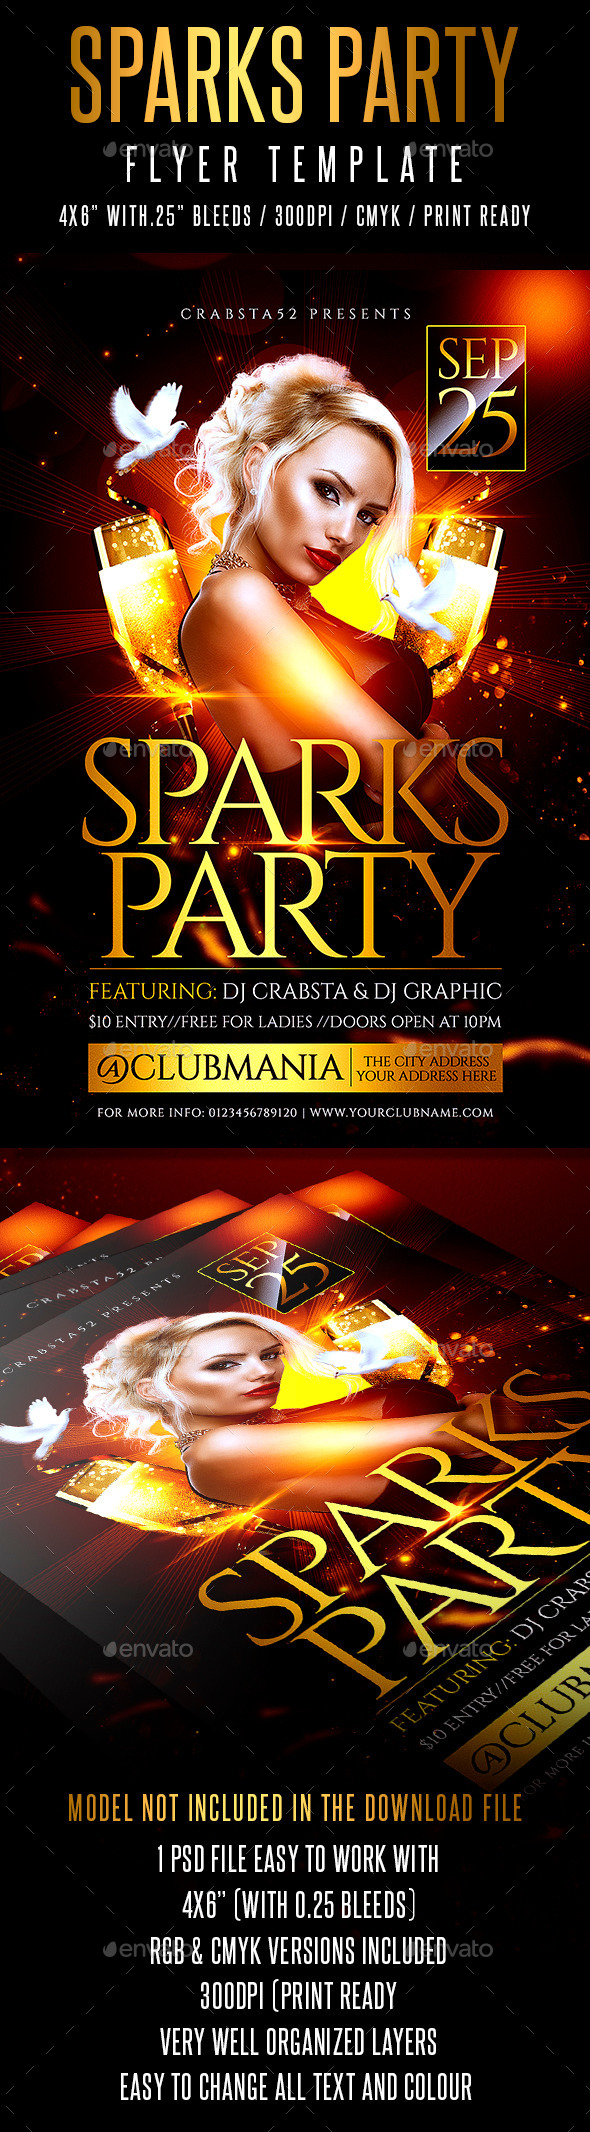 Sparks Party Flyer Template  - Flyers Print Templates